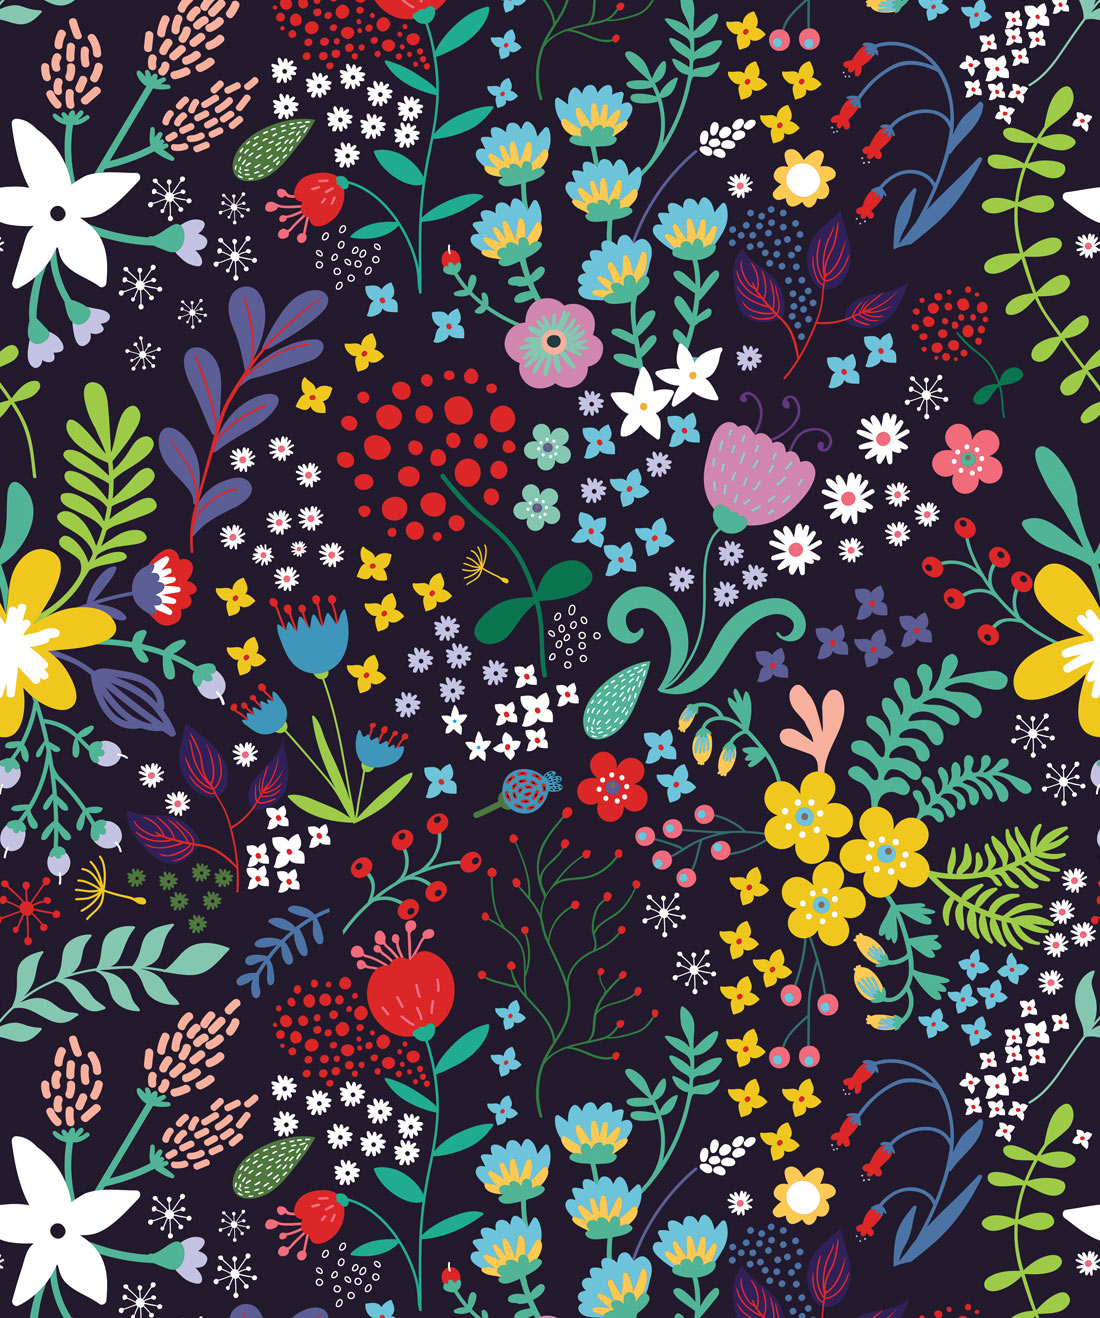 Friday Floral Wallpaper